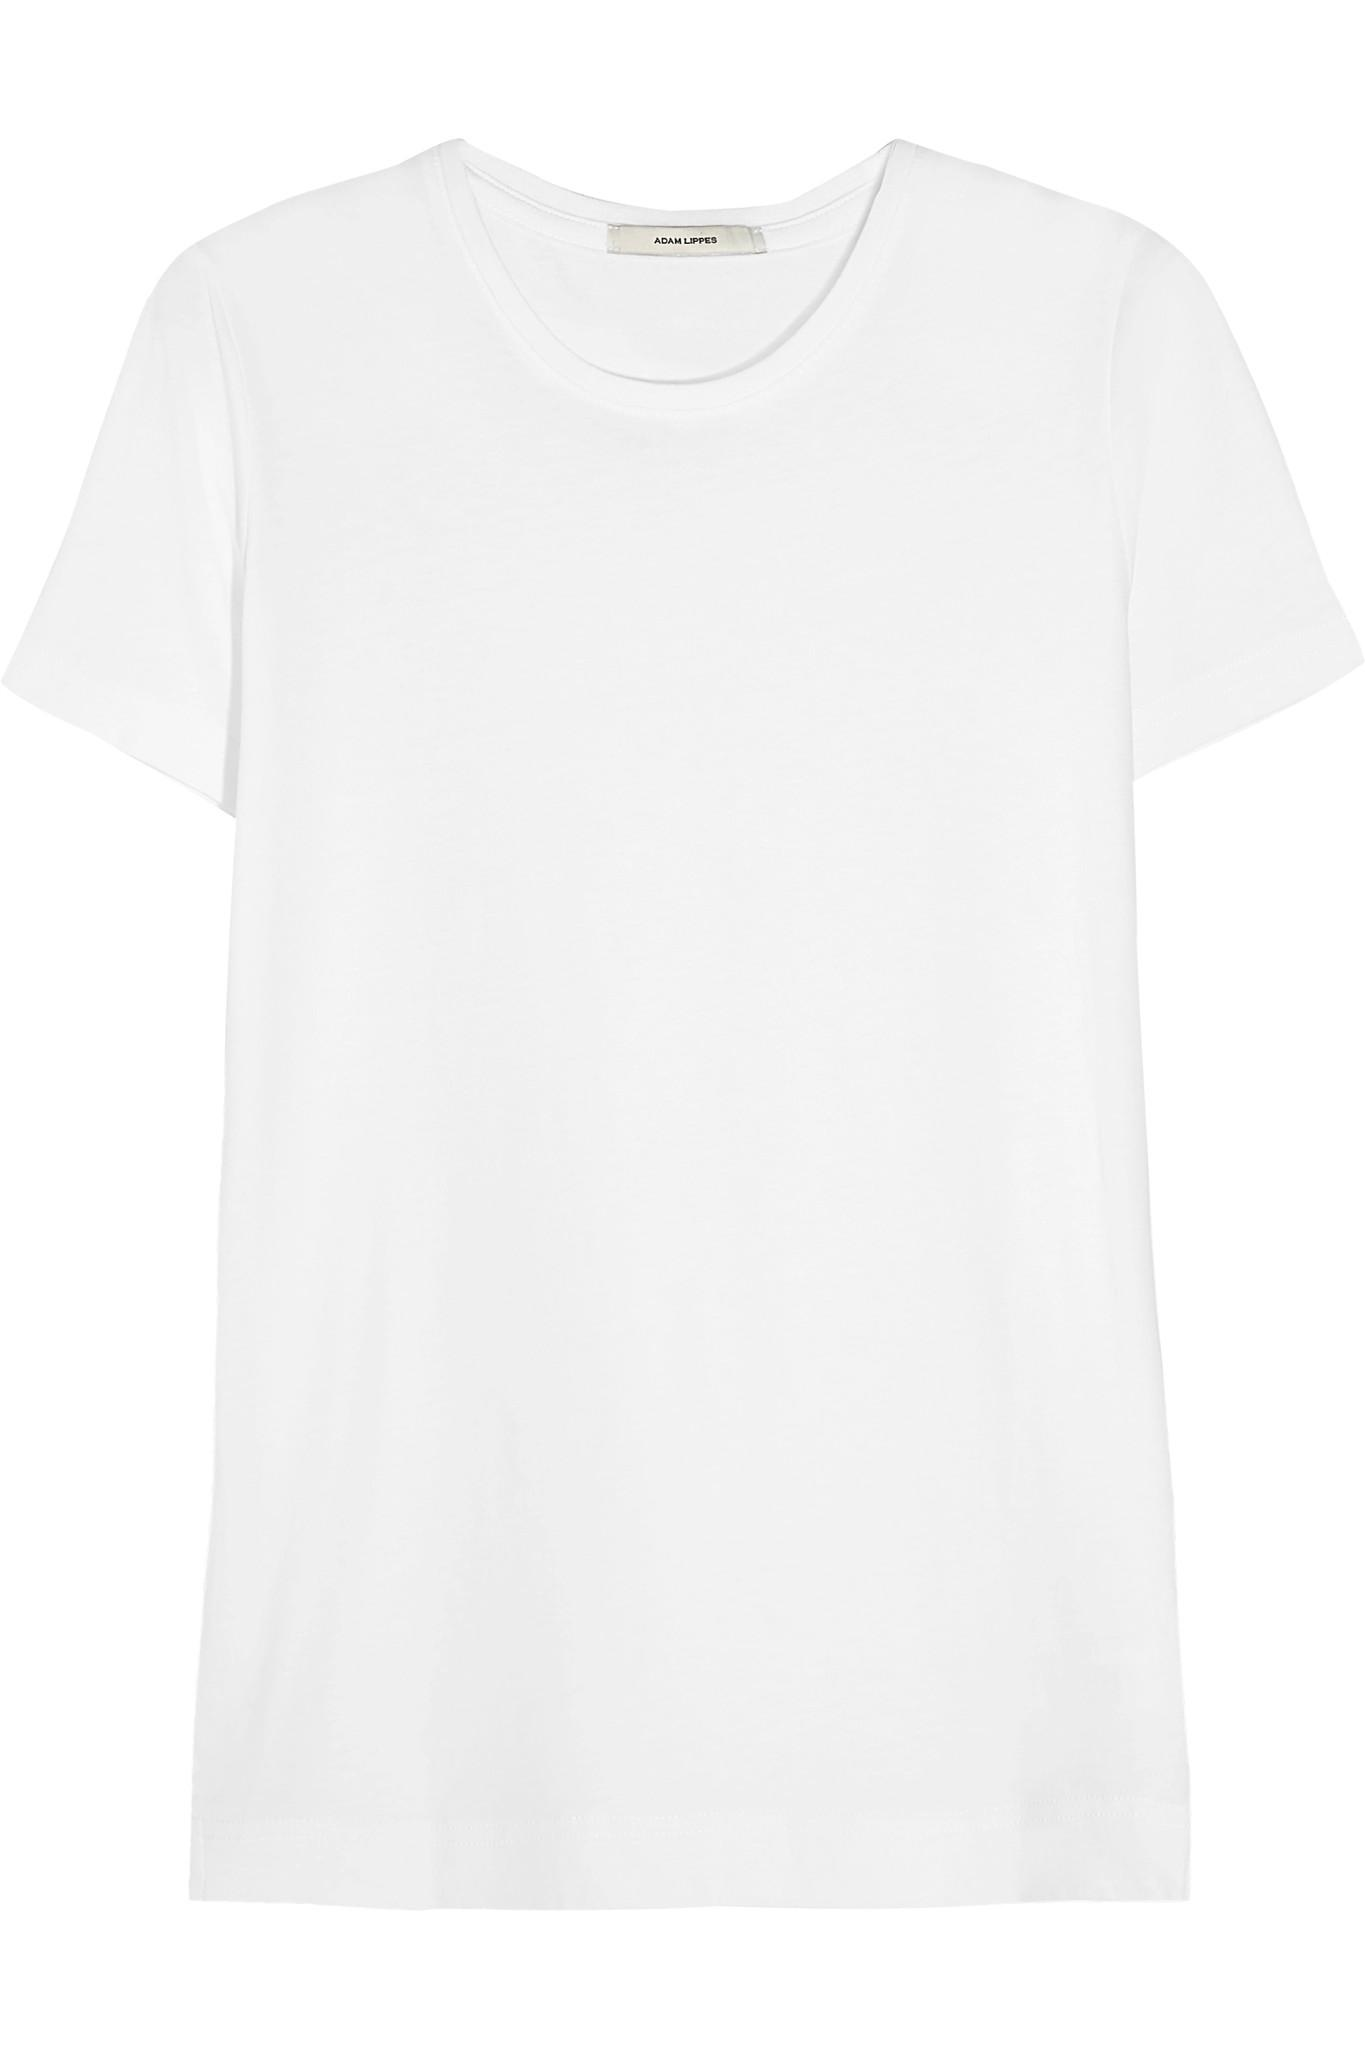 Adam lippes pima cotton t shirt in white lyst for Adam lippes t shirt